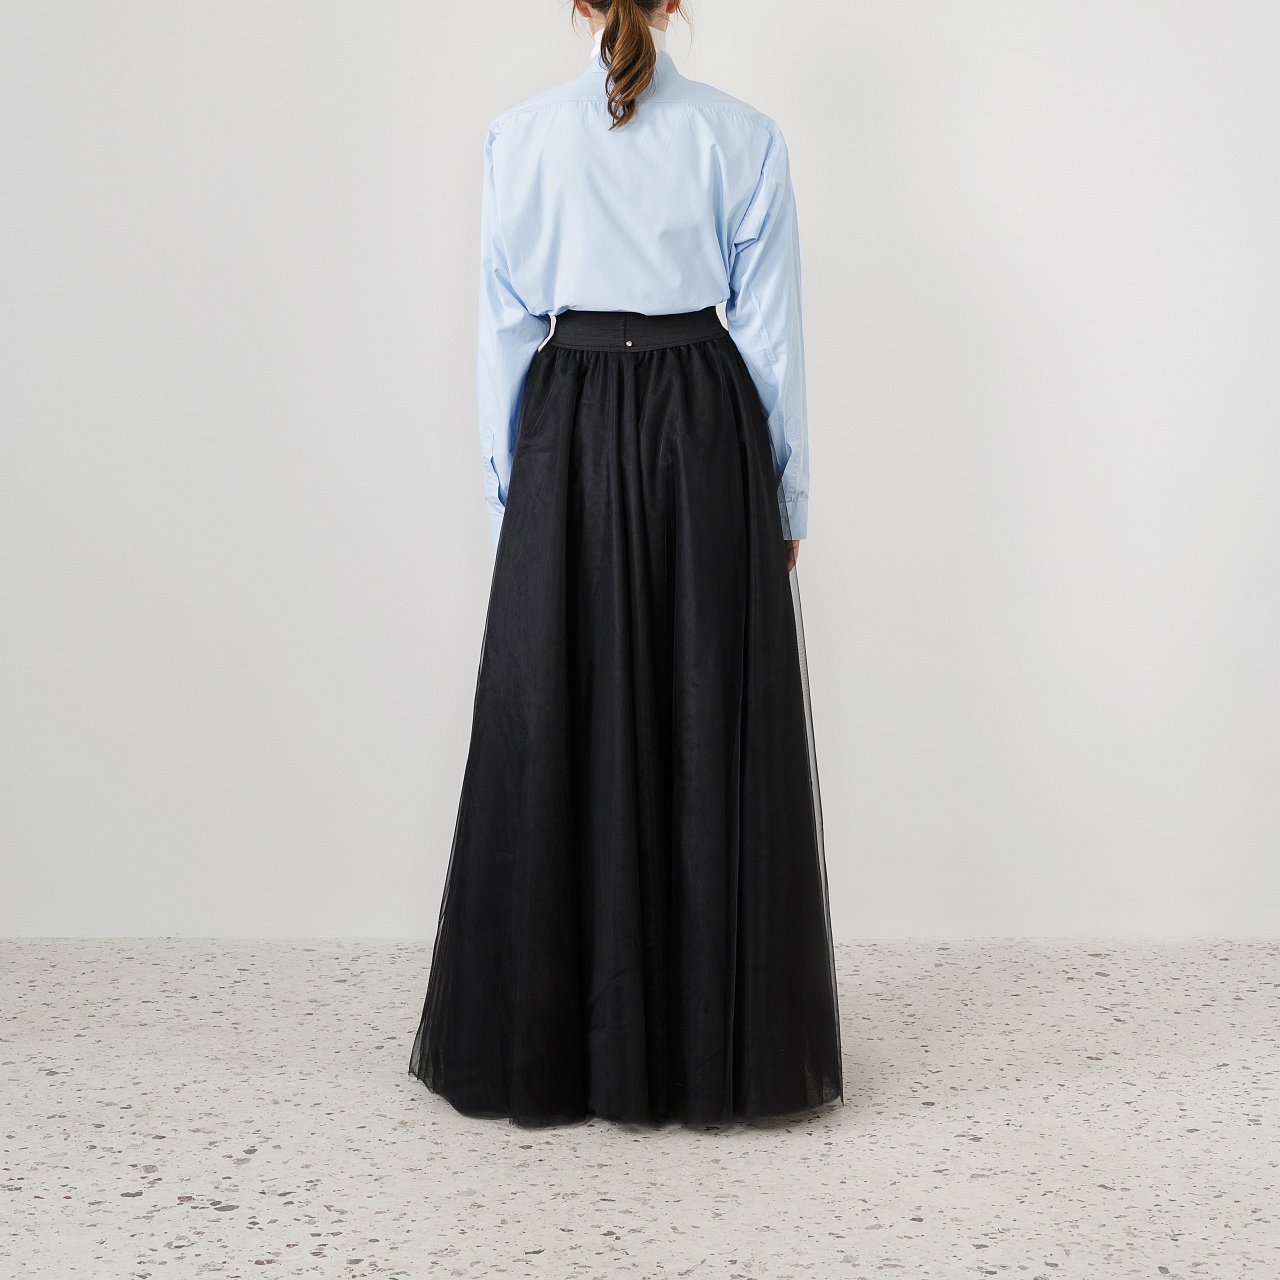 Product preview: Tulle Tutu Skirt Black Maxi